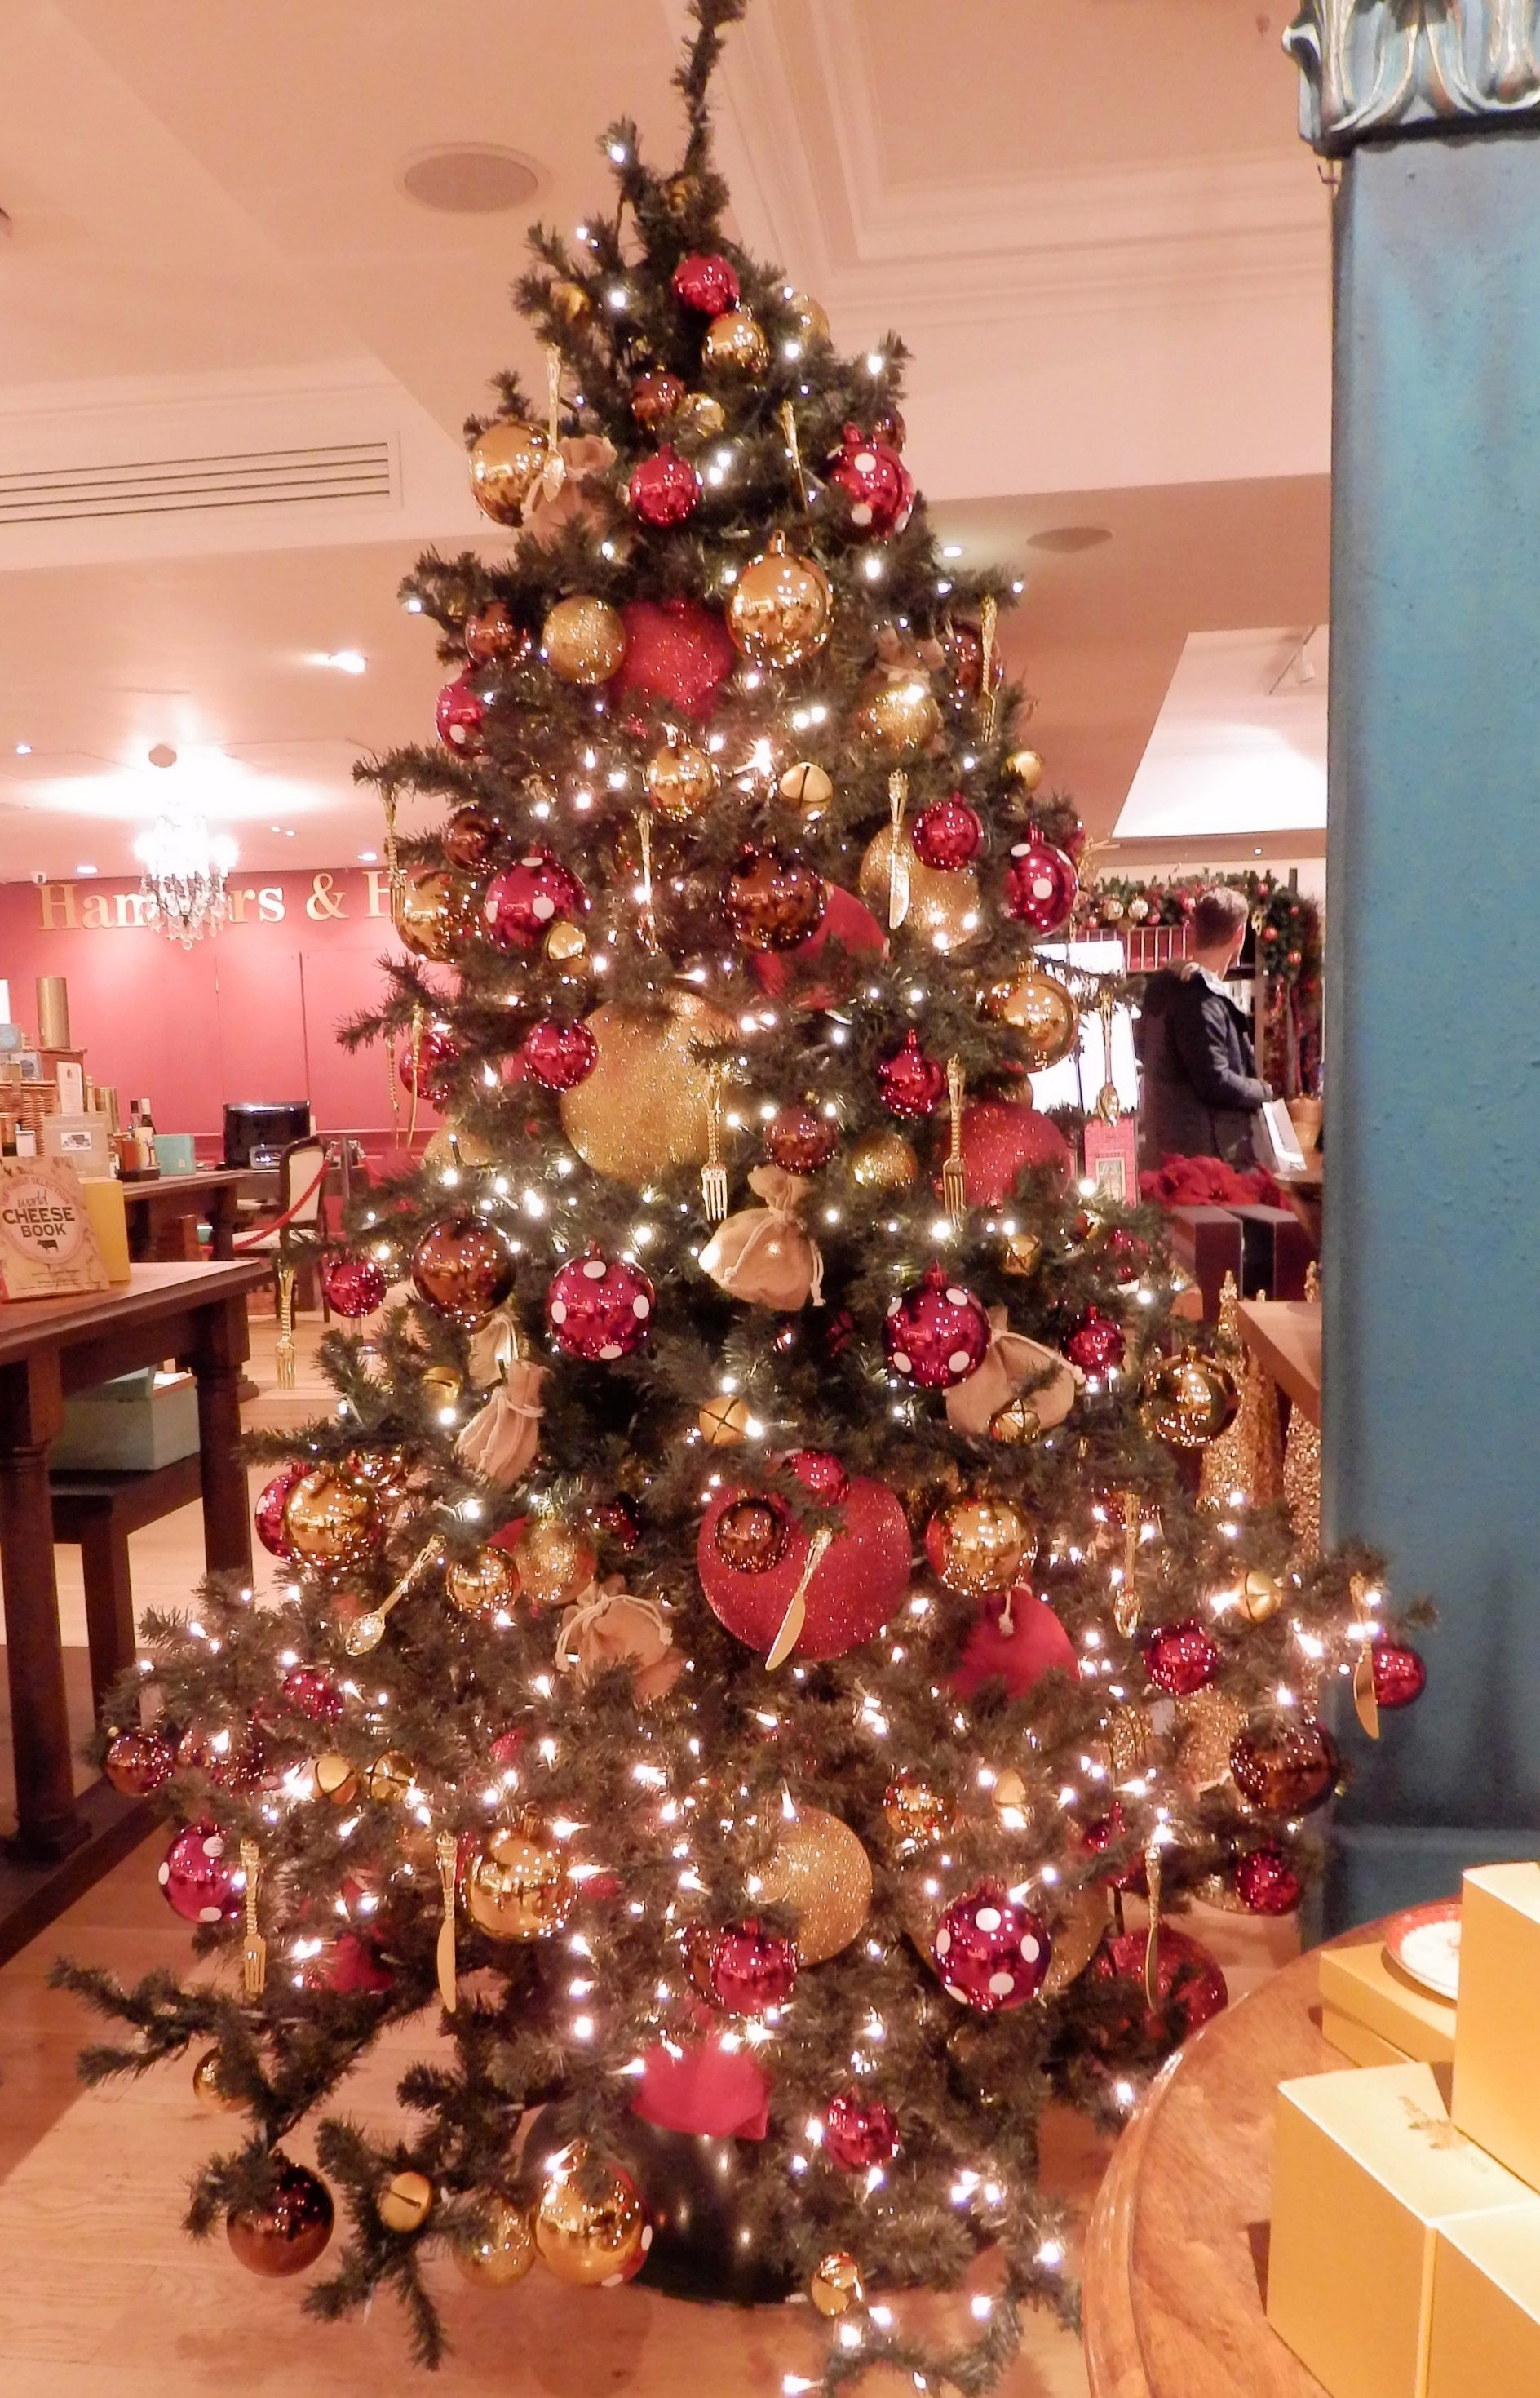 Fortnum mason xmas decorations christmas pinterest - Fortnum and mason christmas decorations ...